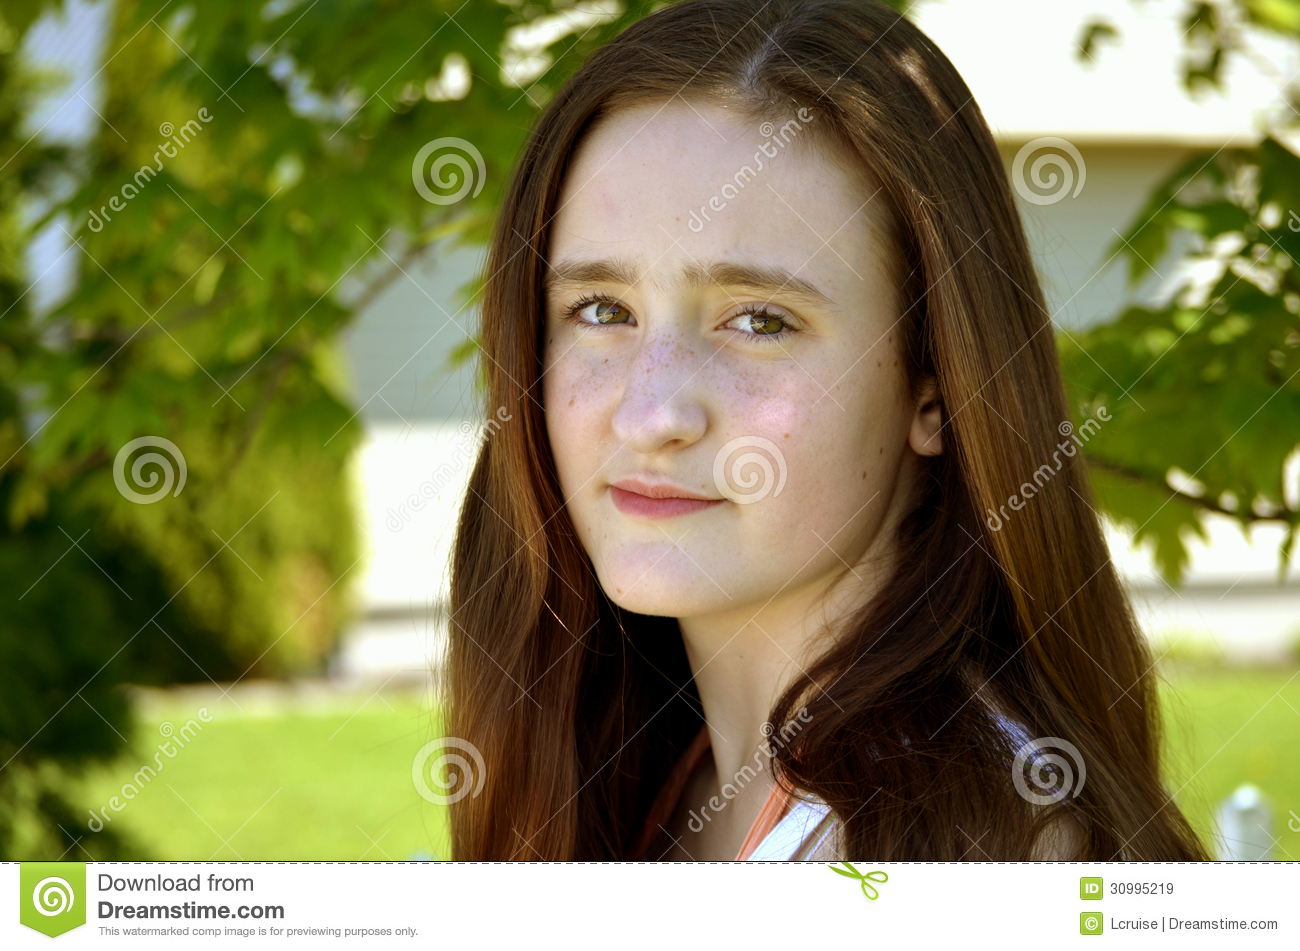 Pretty Girl With Serious Expression Royalty Free Stock